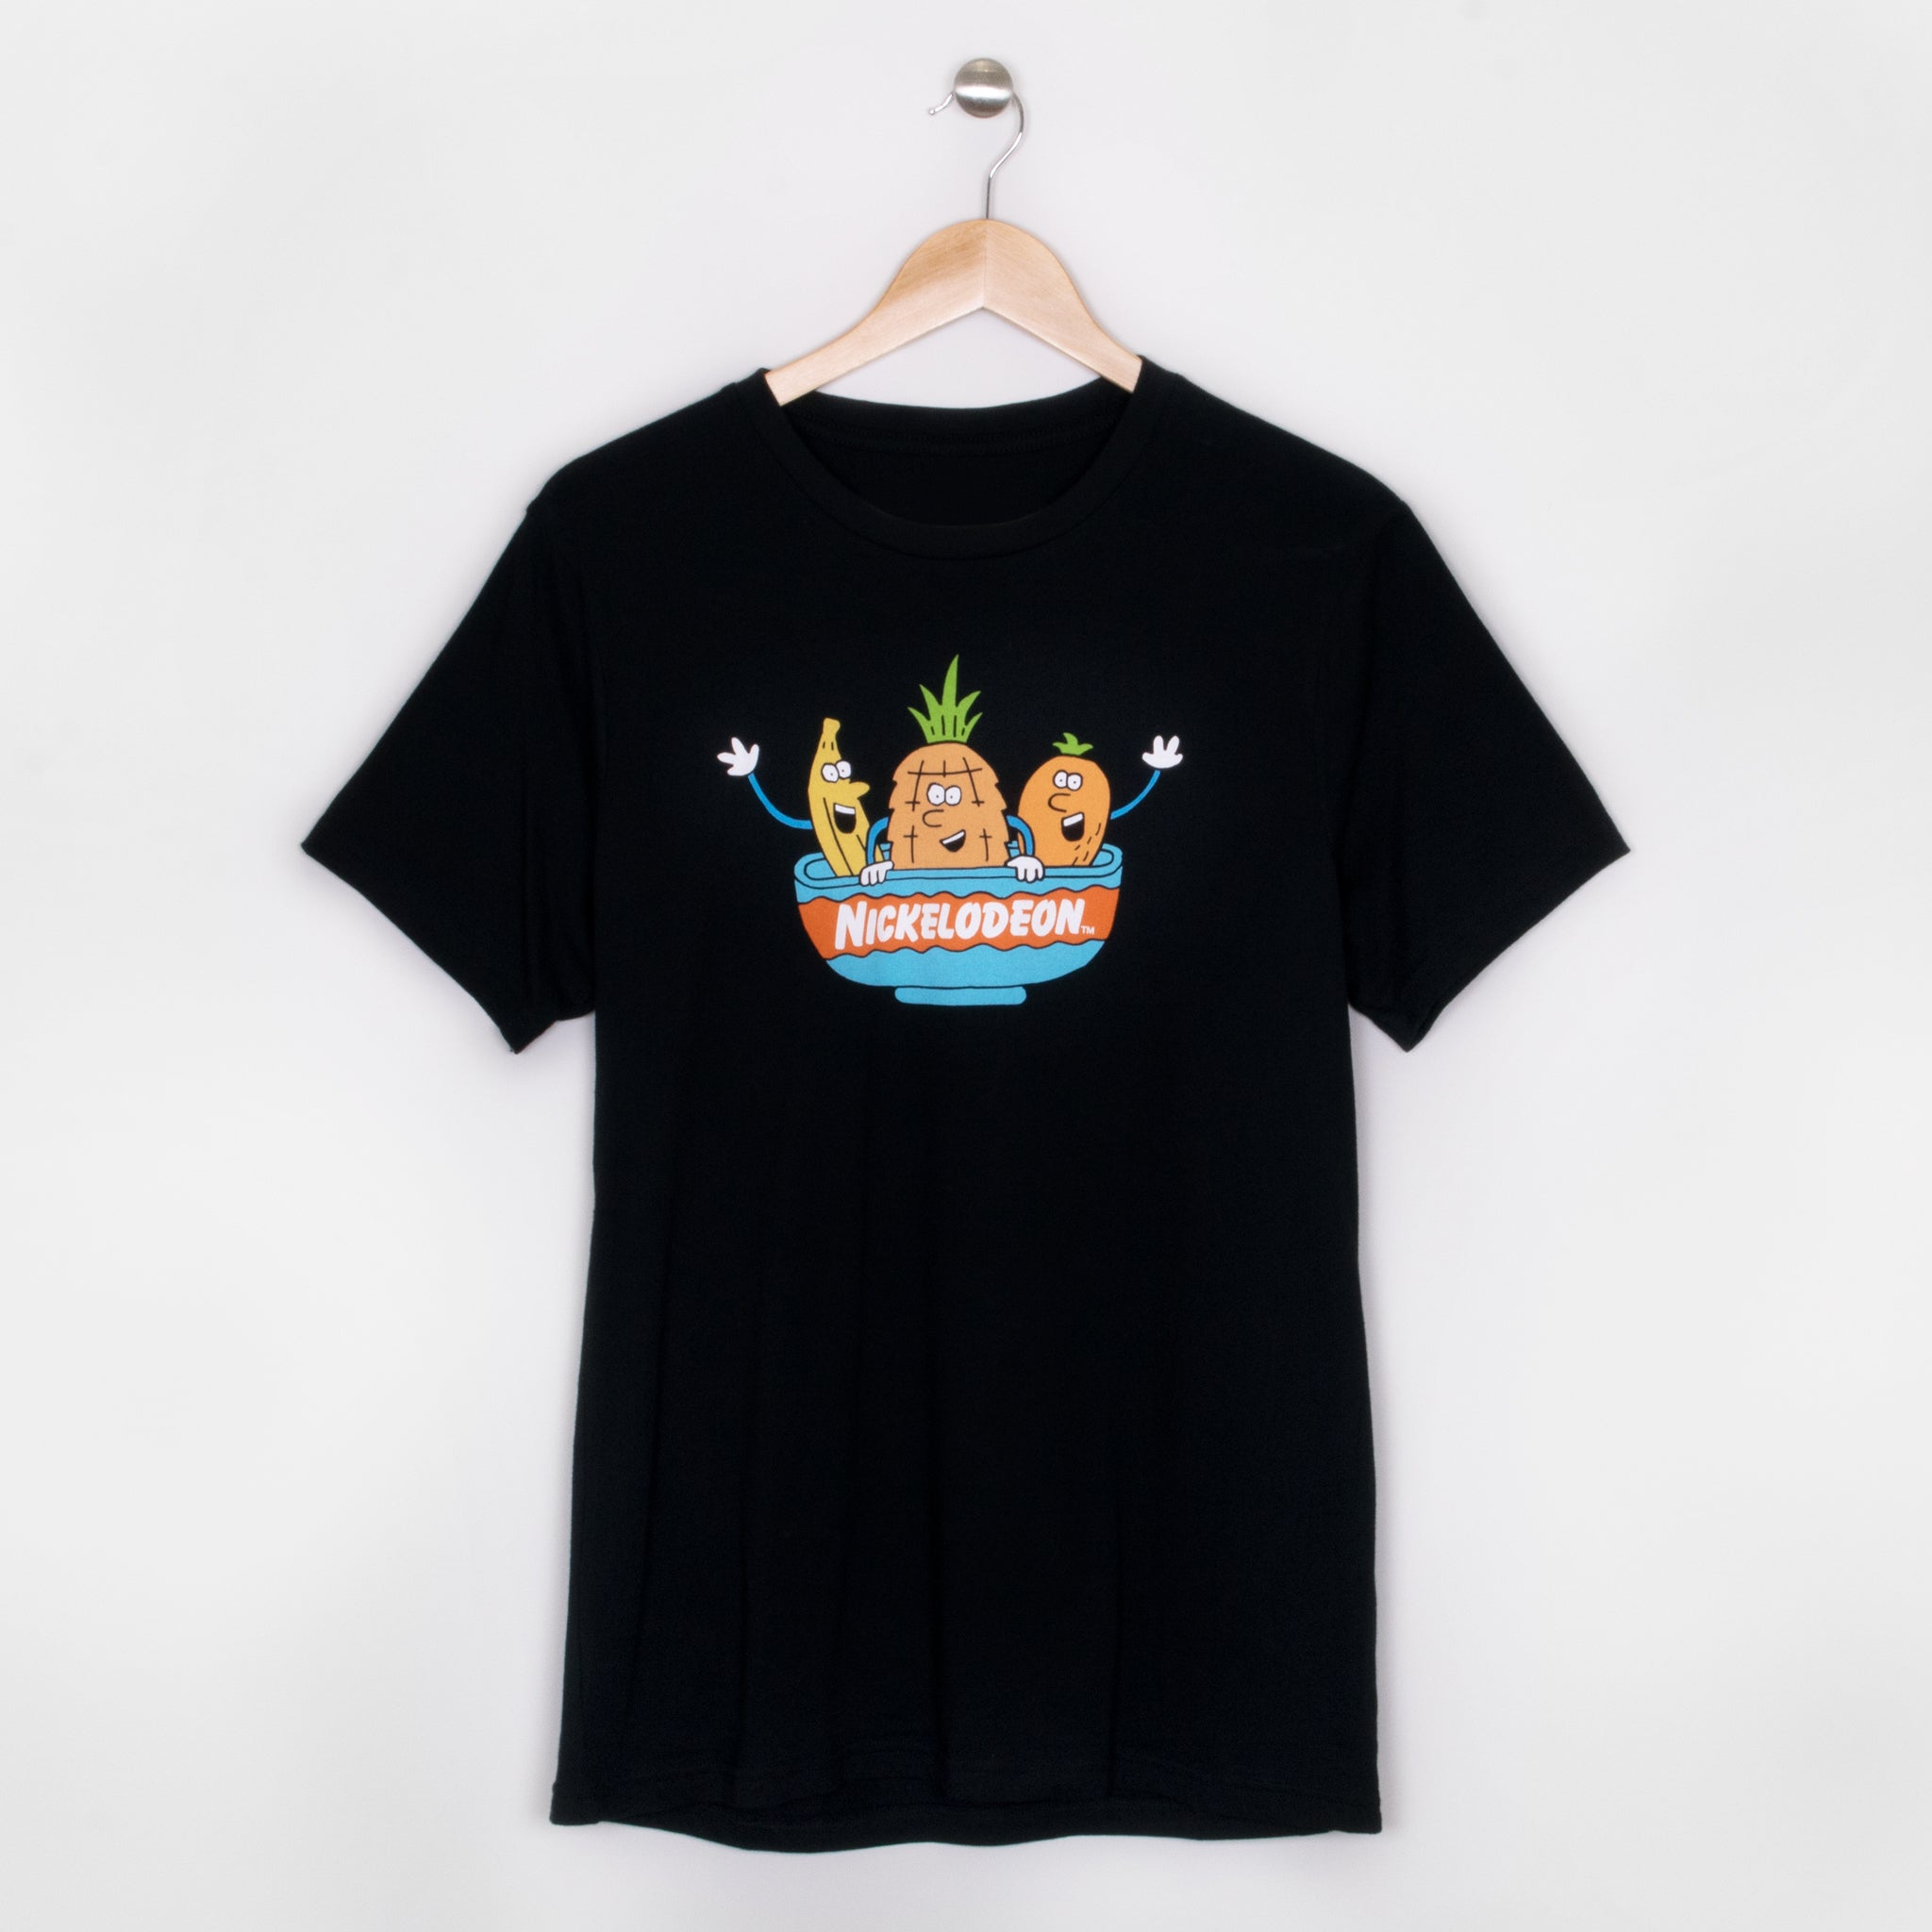 nickelodeon nick classic bumper fruit bowl 90s kids apparel t-shirt shirt culturefly